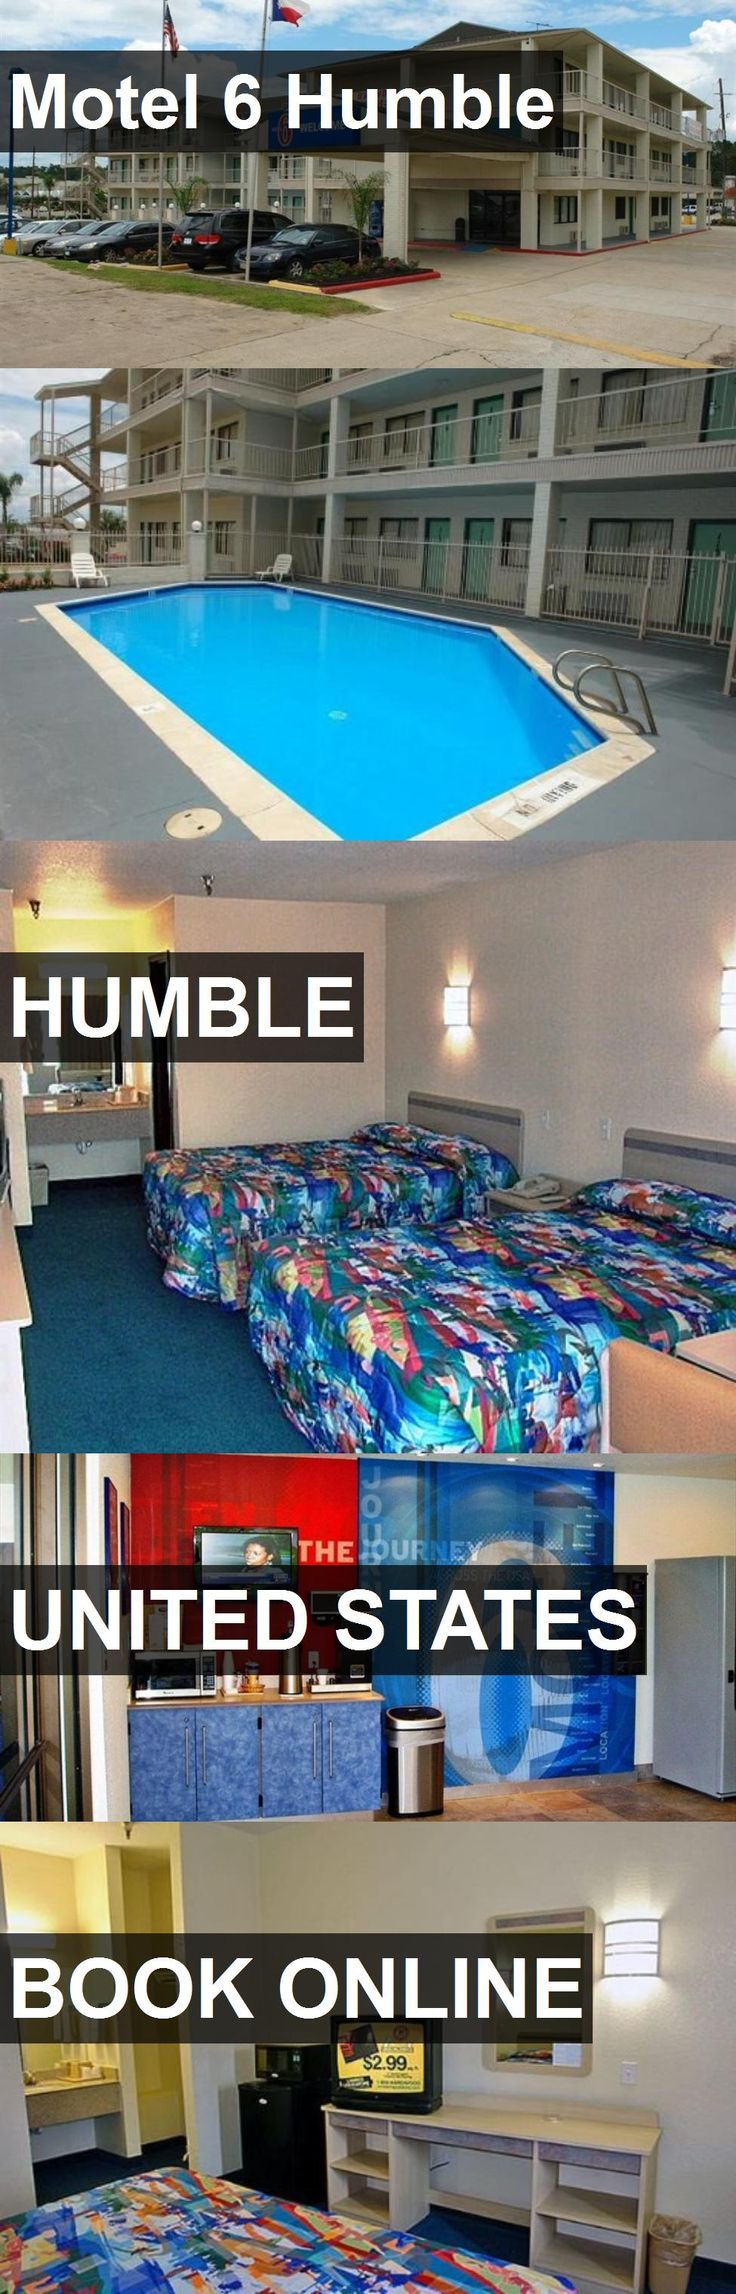 Hotel Motel 6 Humble in Humble, United States. For more information, photos, reviews and best prices please follow the link. #UnitedStates #Humble #travel #vacation #hotel